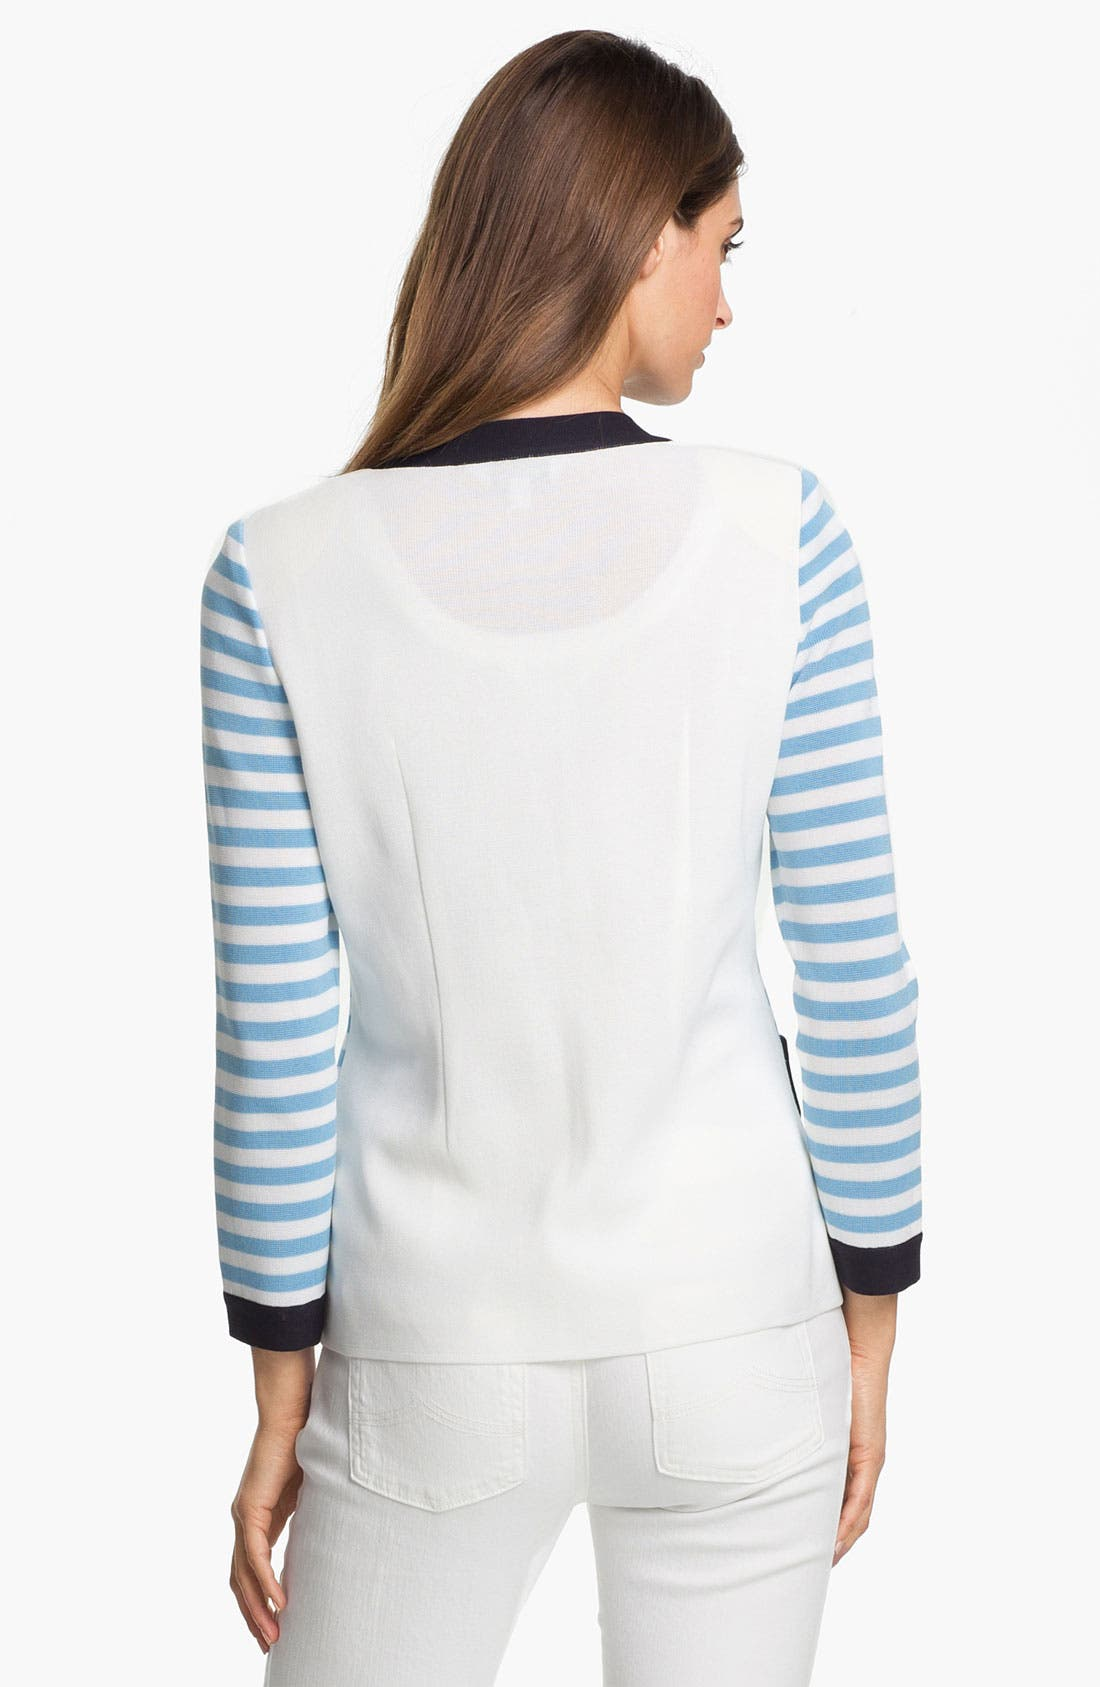 Alternate Image 2  - Exclusively Misook 'Rebecca' Stripe Jacket (Petite) (Online Exclusive)